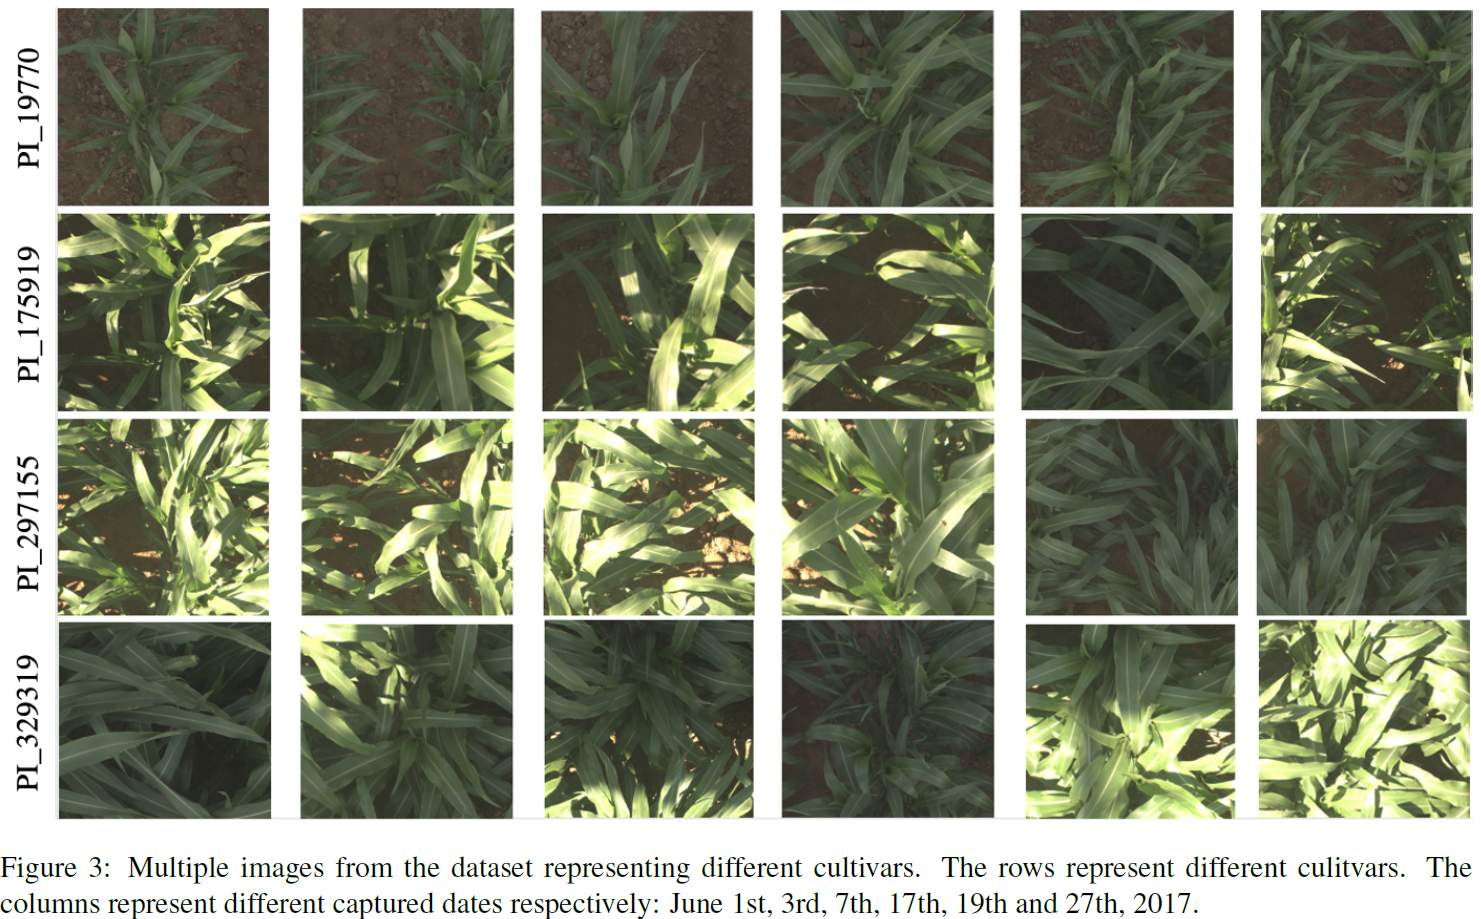 Multiple images from the dataset representing different cultivars. The rows represent different culitvars. The columns represent different captured dates respectively: June 1st, 3rd, 7th, 17th, 19th and 27th, 2017.